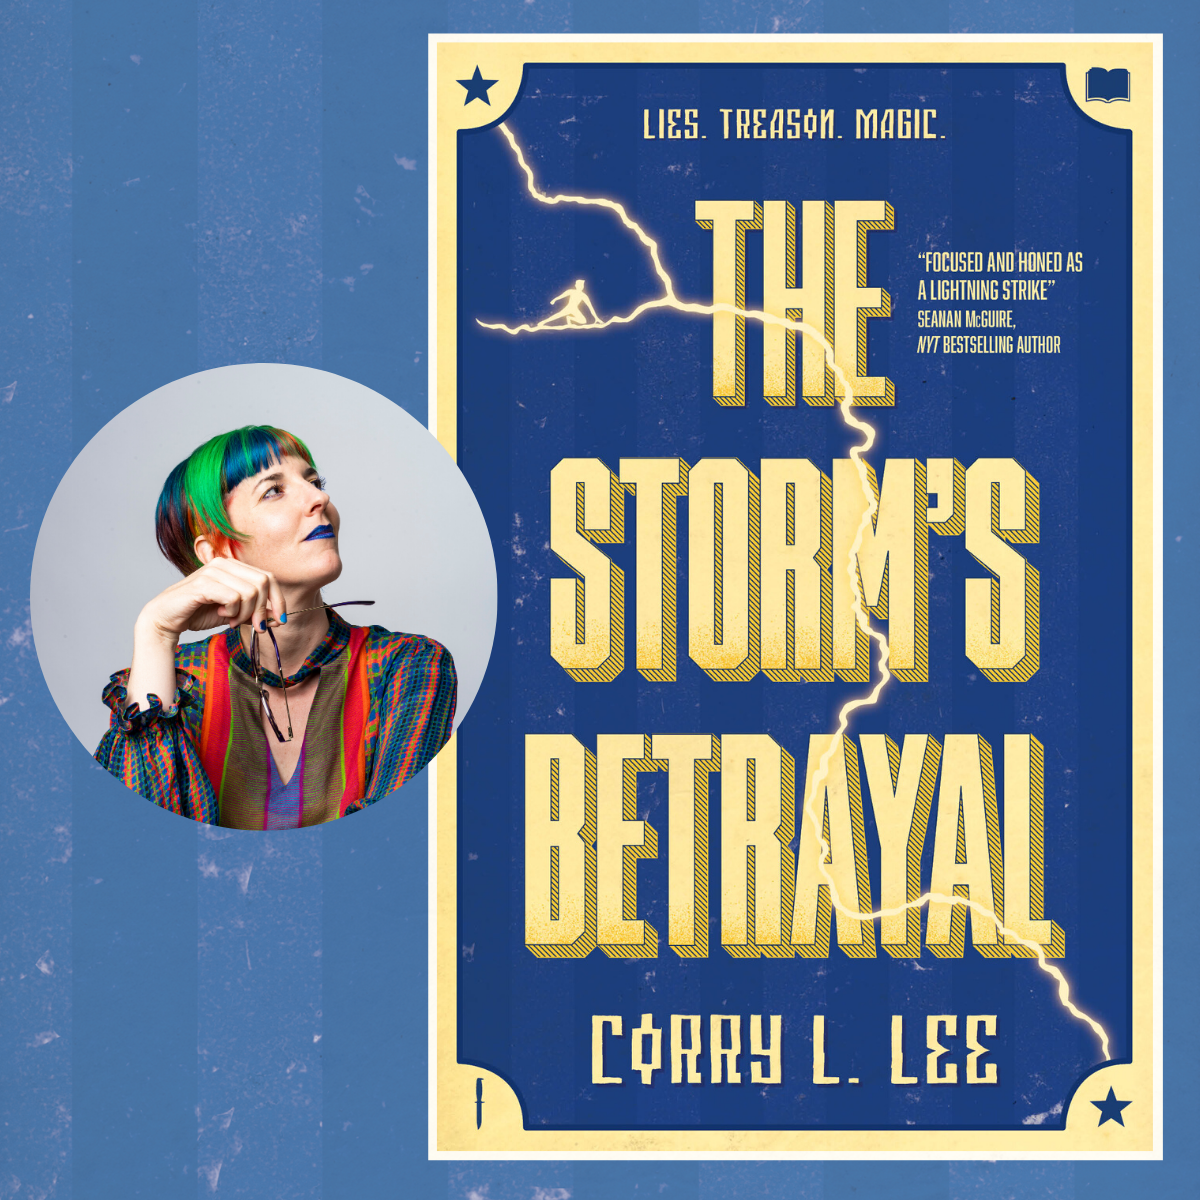 Coming in 2021, The Storm's Betrayal by Corry L. Lee